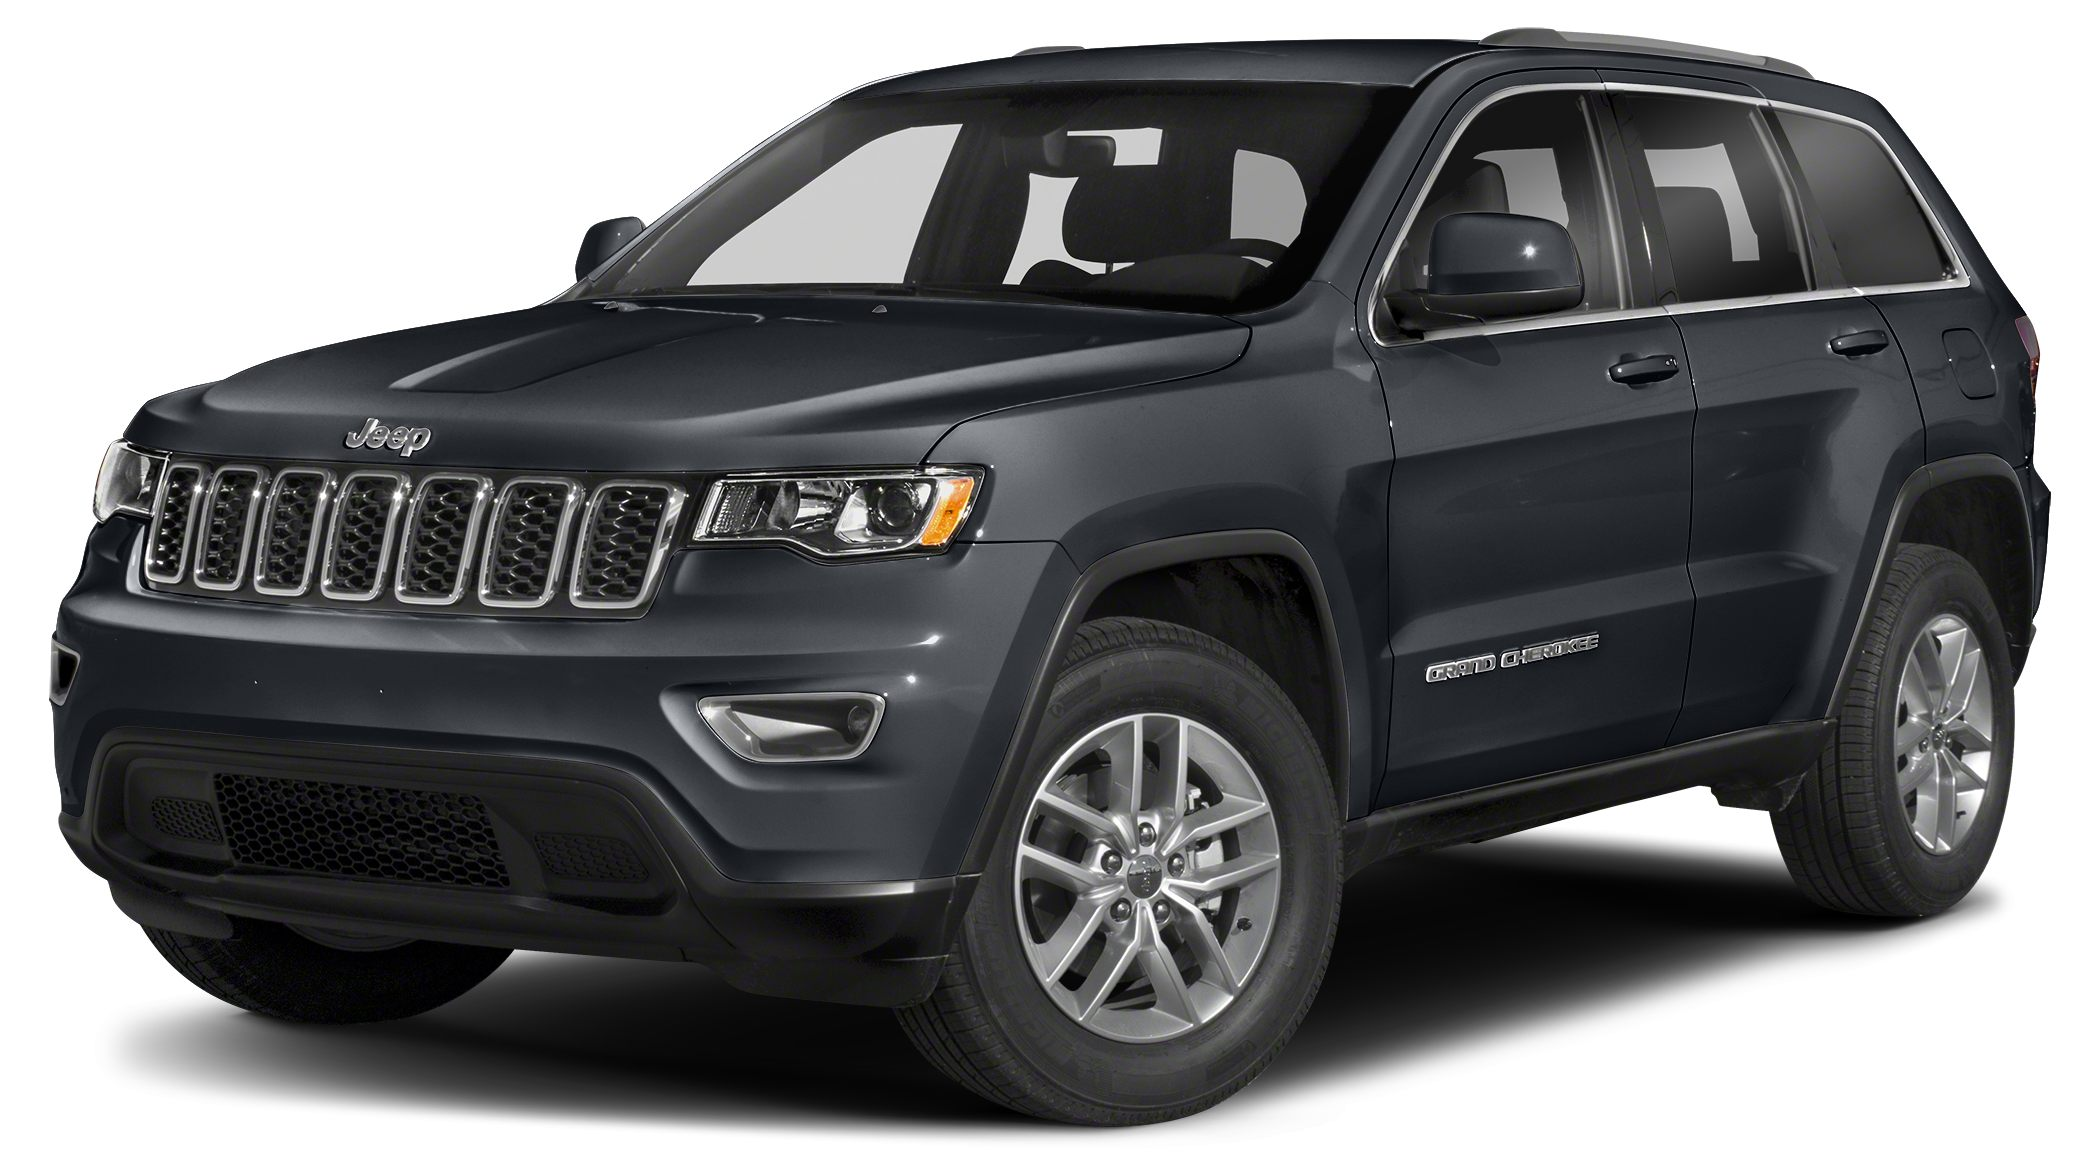 2017 Jeep Grand Cherokee Laredo New Inventory Great MPG 26 MPG Hwy This ample SUV seeks the r